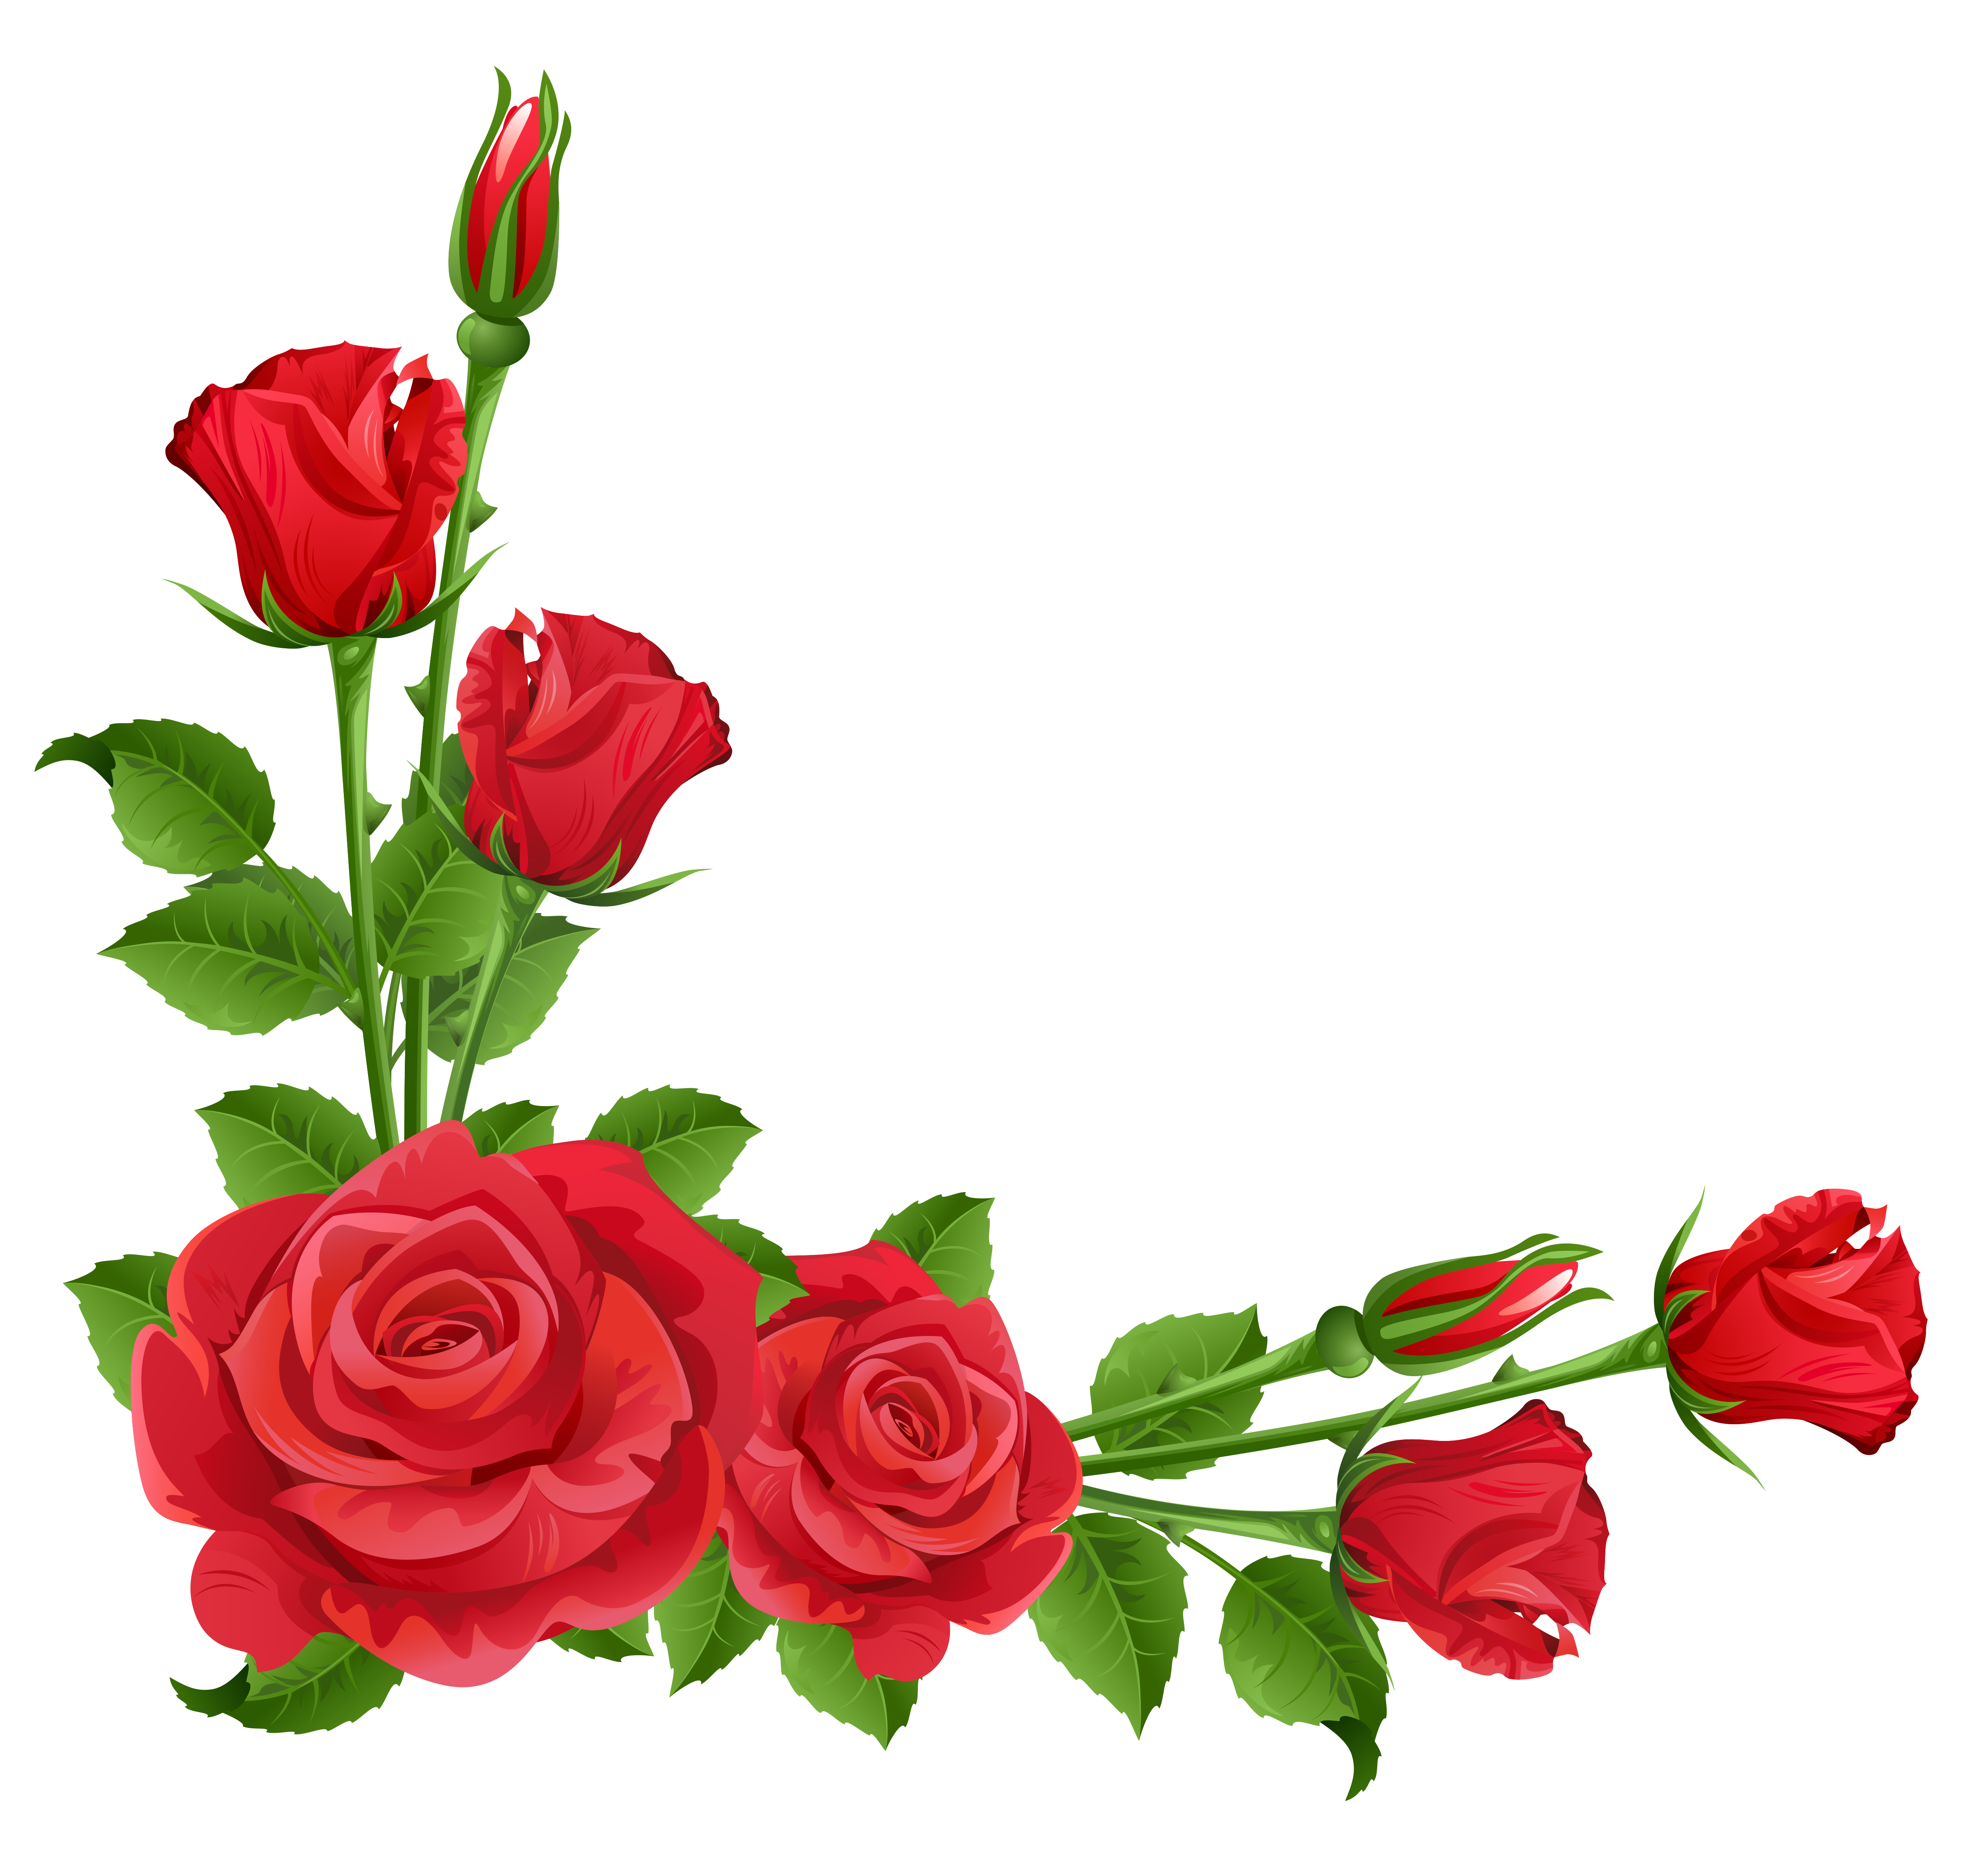 5187x4954 Roses rose clip art free clipart images 2 clipartcow 2